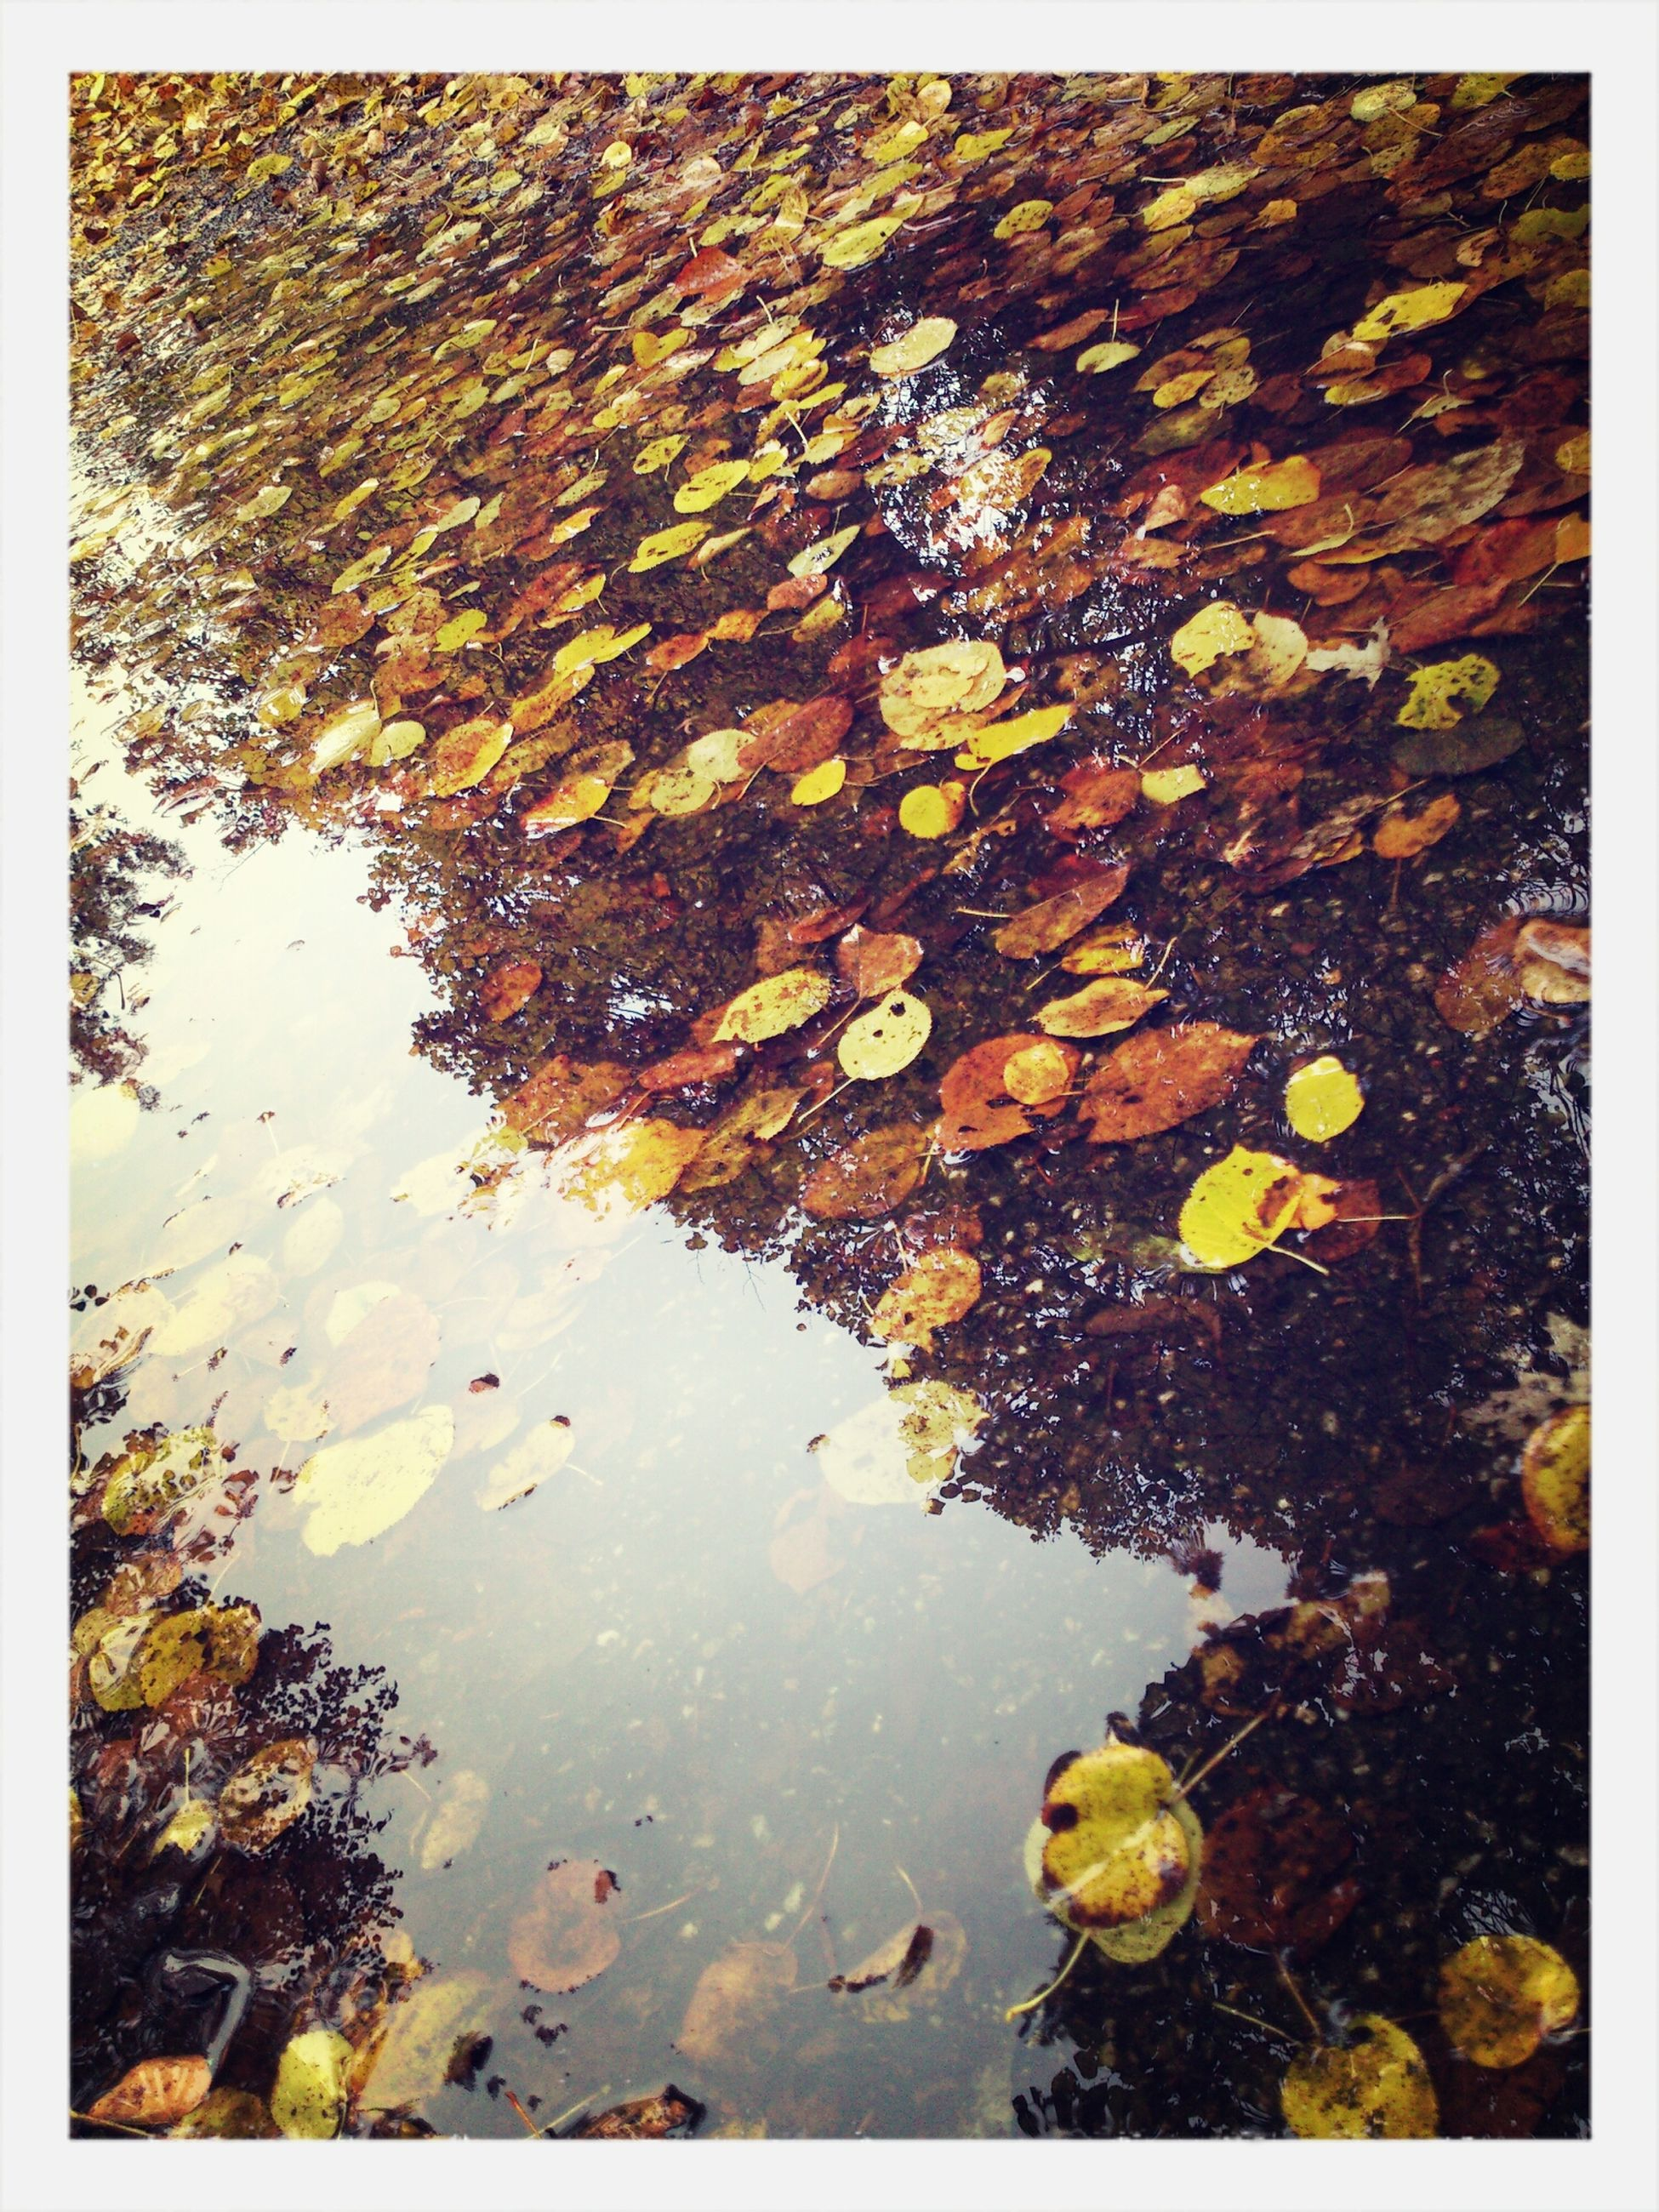 water, reflection, puddle, transfer print, wet, leaf, season, high angle view, auto post production filter, autumn, lake, nature, rain, tranquility, standing water, leaves, day, outdoors, pond, floating on water